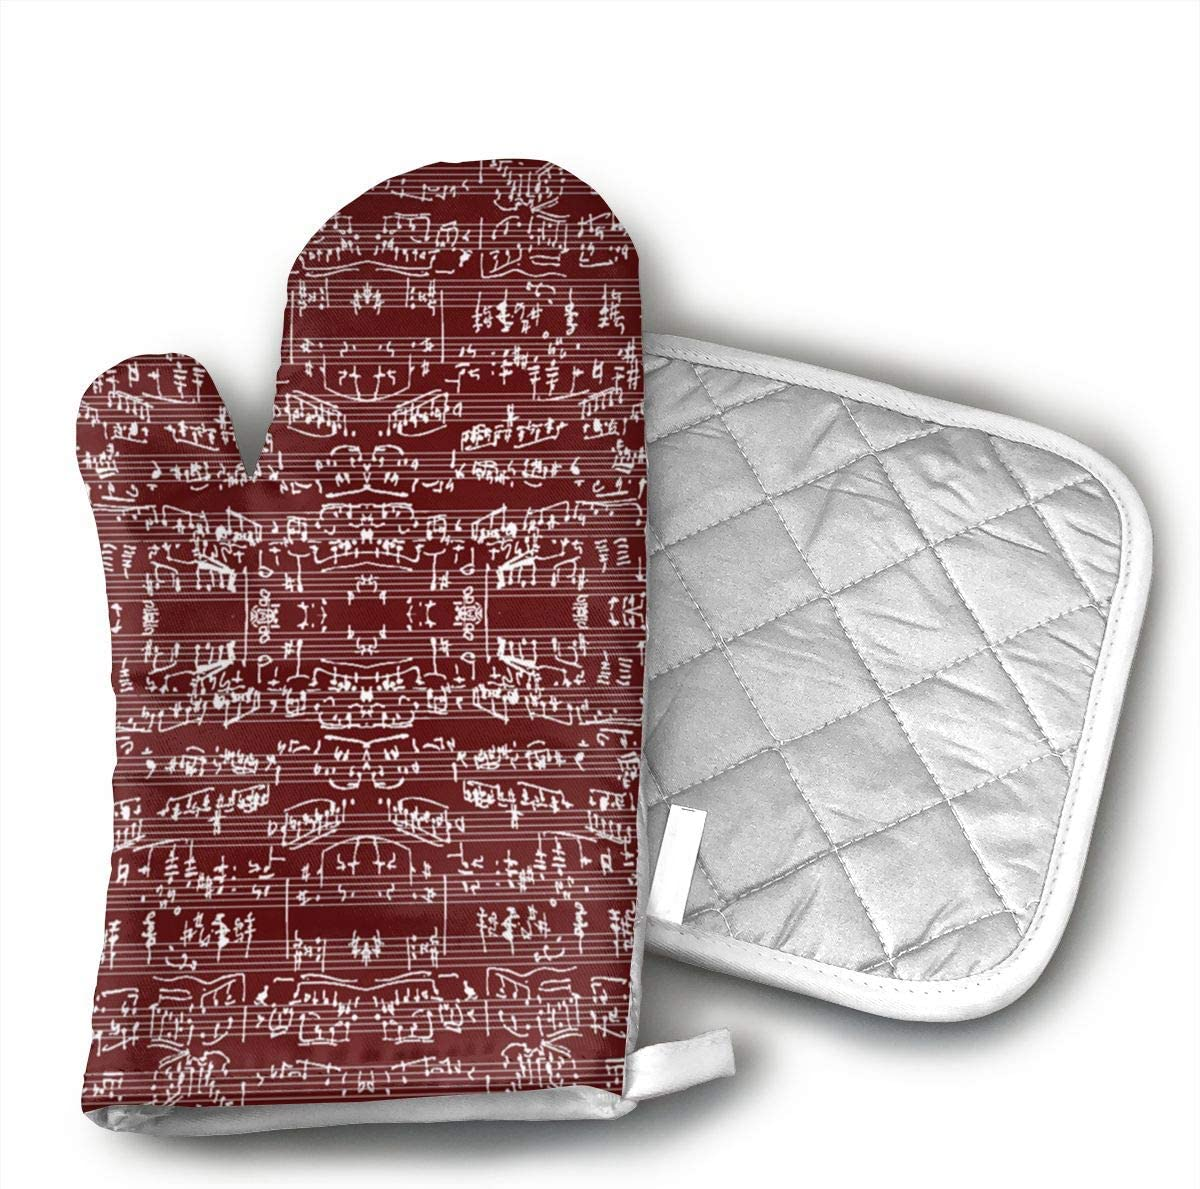 UYUOSEY Hand Written Sheet Music On Burgundy Small Fabric Cotton Oven Gloves Baked a Pair of Anti Burns Gloves Thick Special Kitchen Microwave Gloves